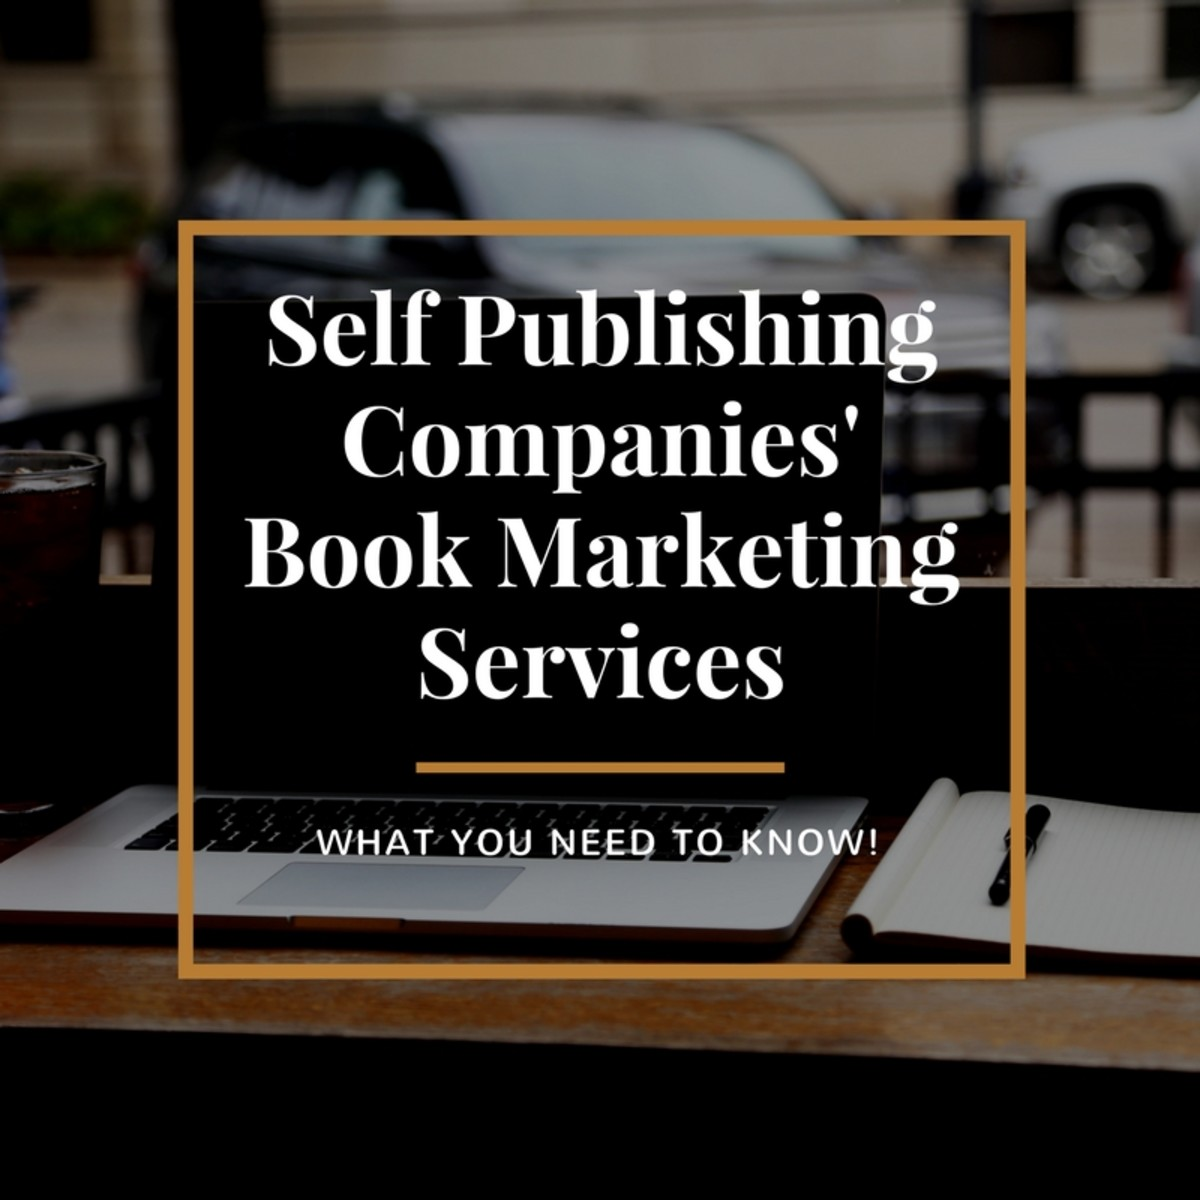 Self Publishing Companies' Book Marketing Services: What You Need to Know